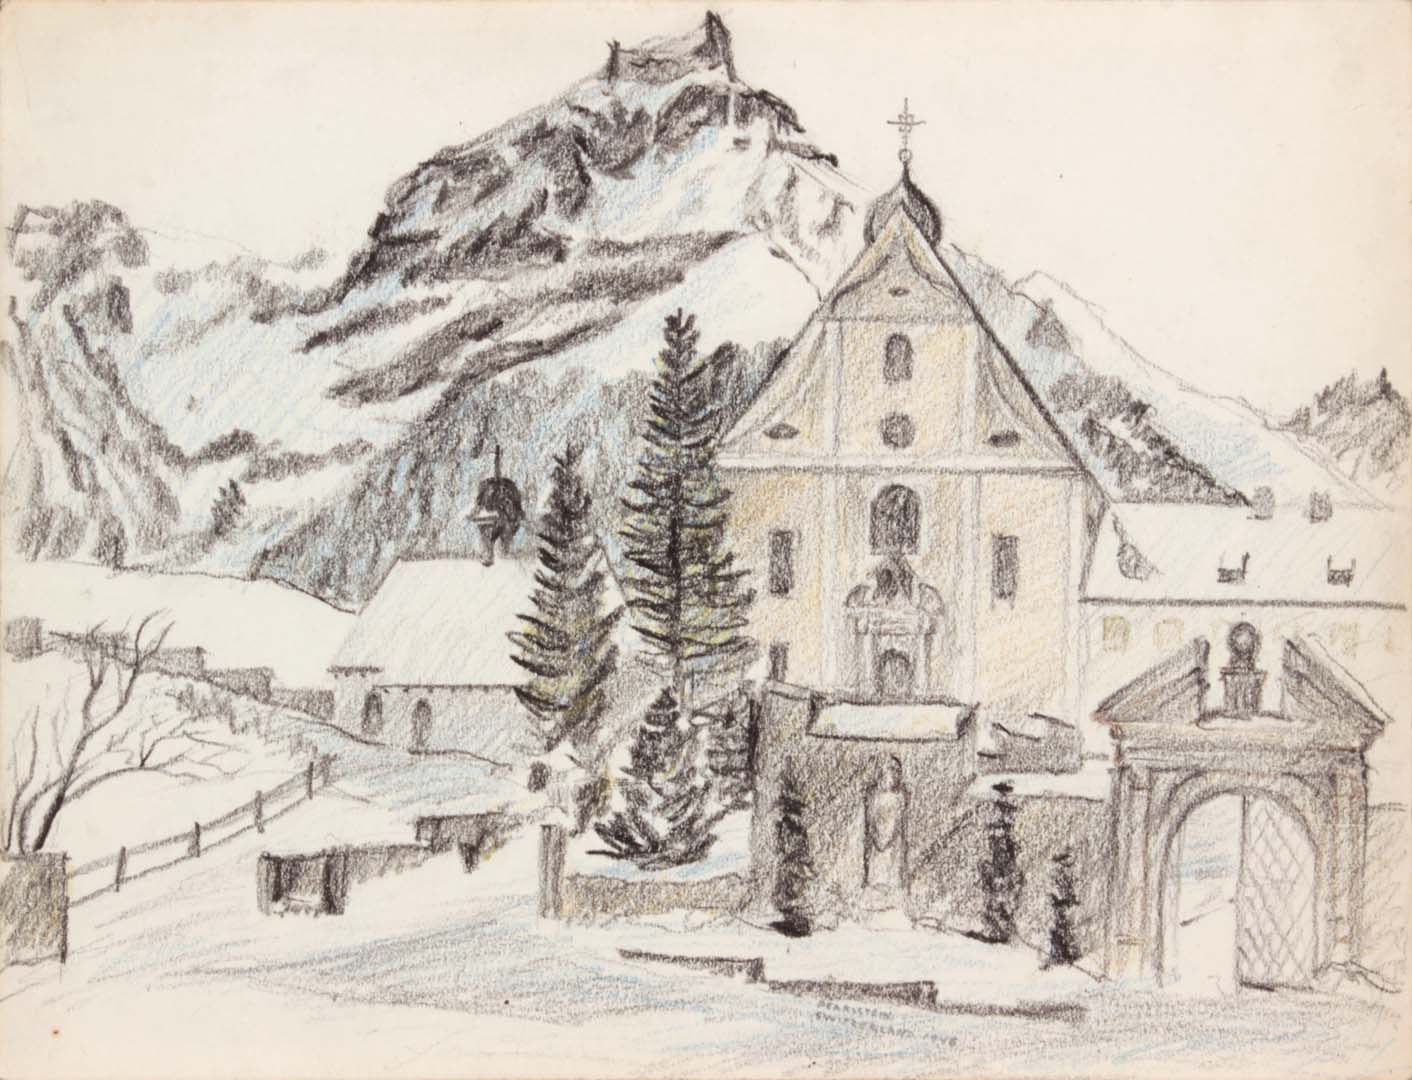 "1946 Alpine Village (Switzerland) Conte Crayon 9"" x 11.875"""